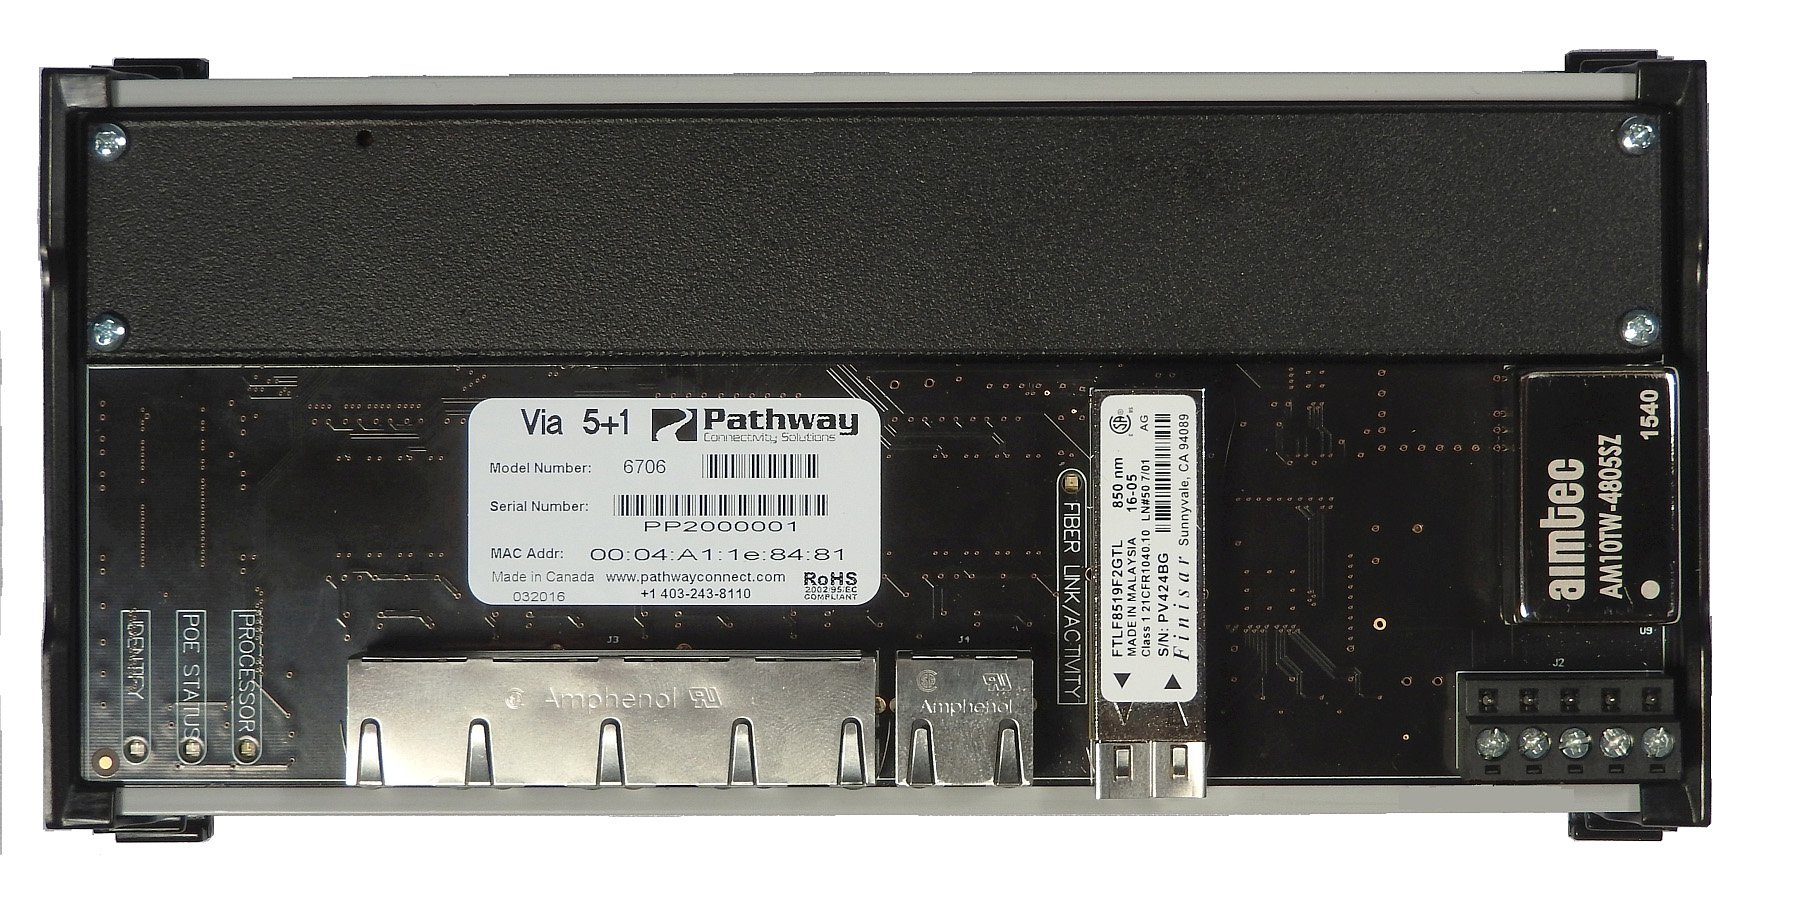 Pathport VIA 5 DIN-Mountable Gigabit Ethernet Switch with LC Fiber Connector